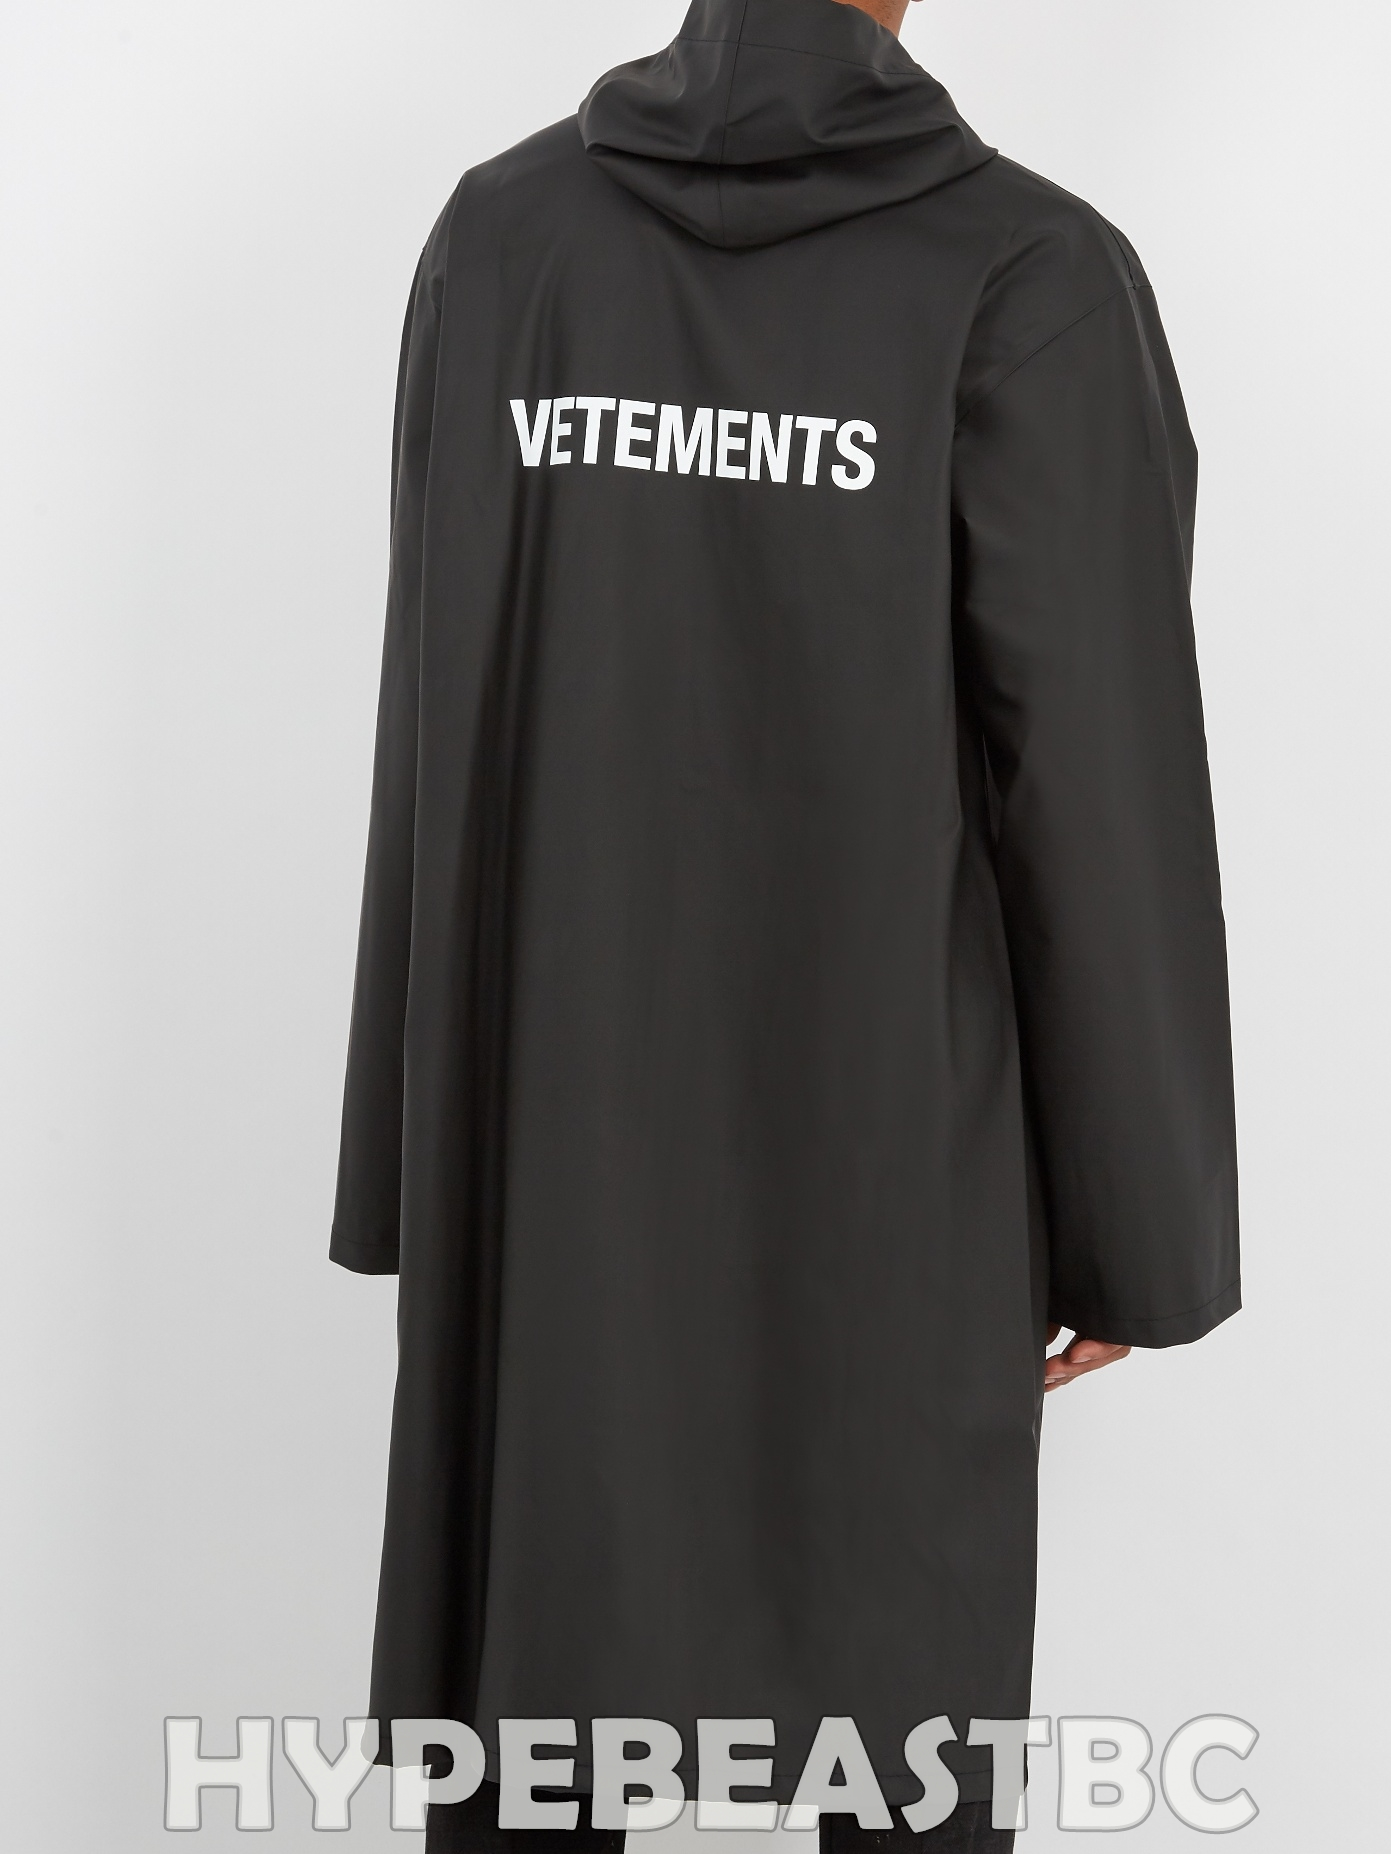 temperament shoes enjoy big discount newest style of VETEMENTS Logo Oversized Hooded Hoodie Raincoat Coat Jacket, One Size,  Black, NWT